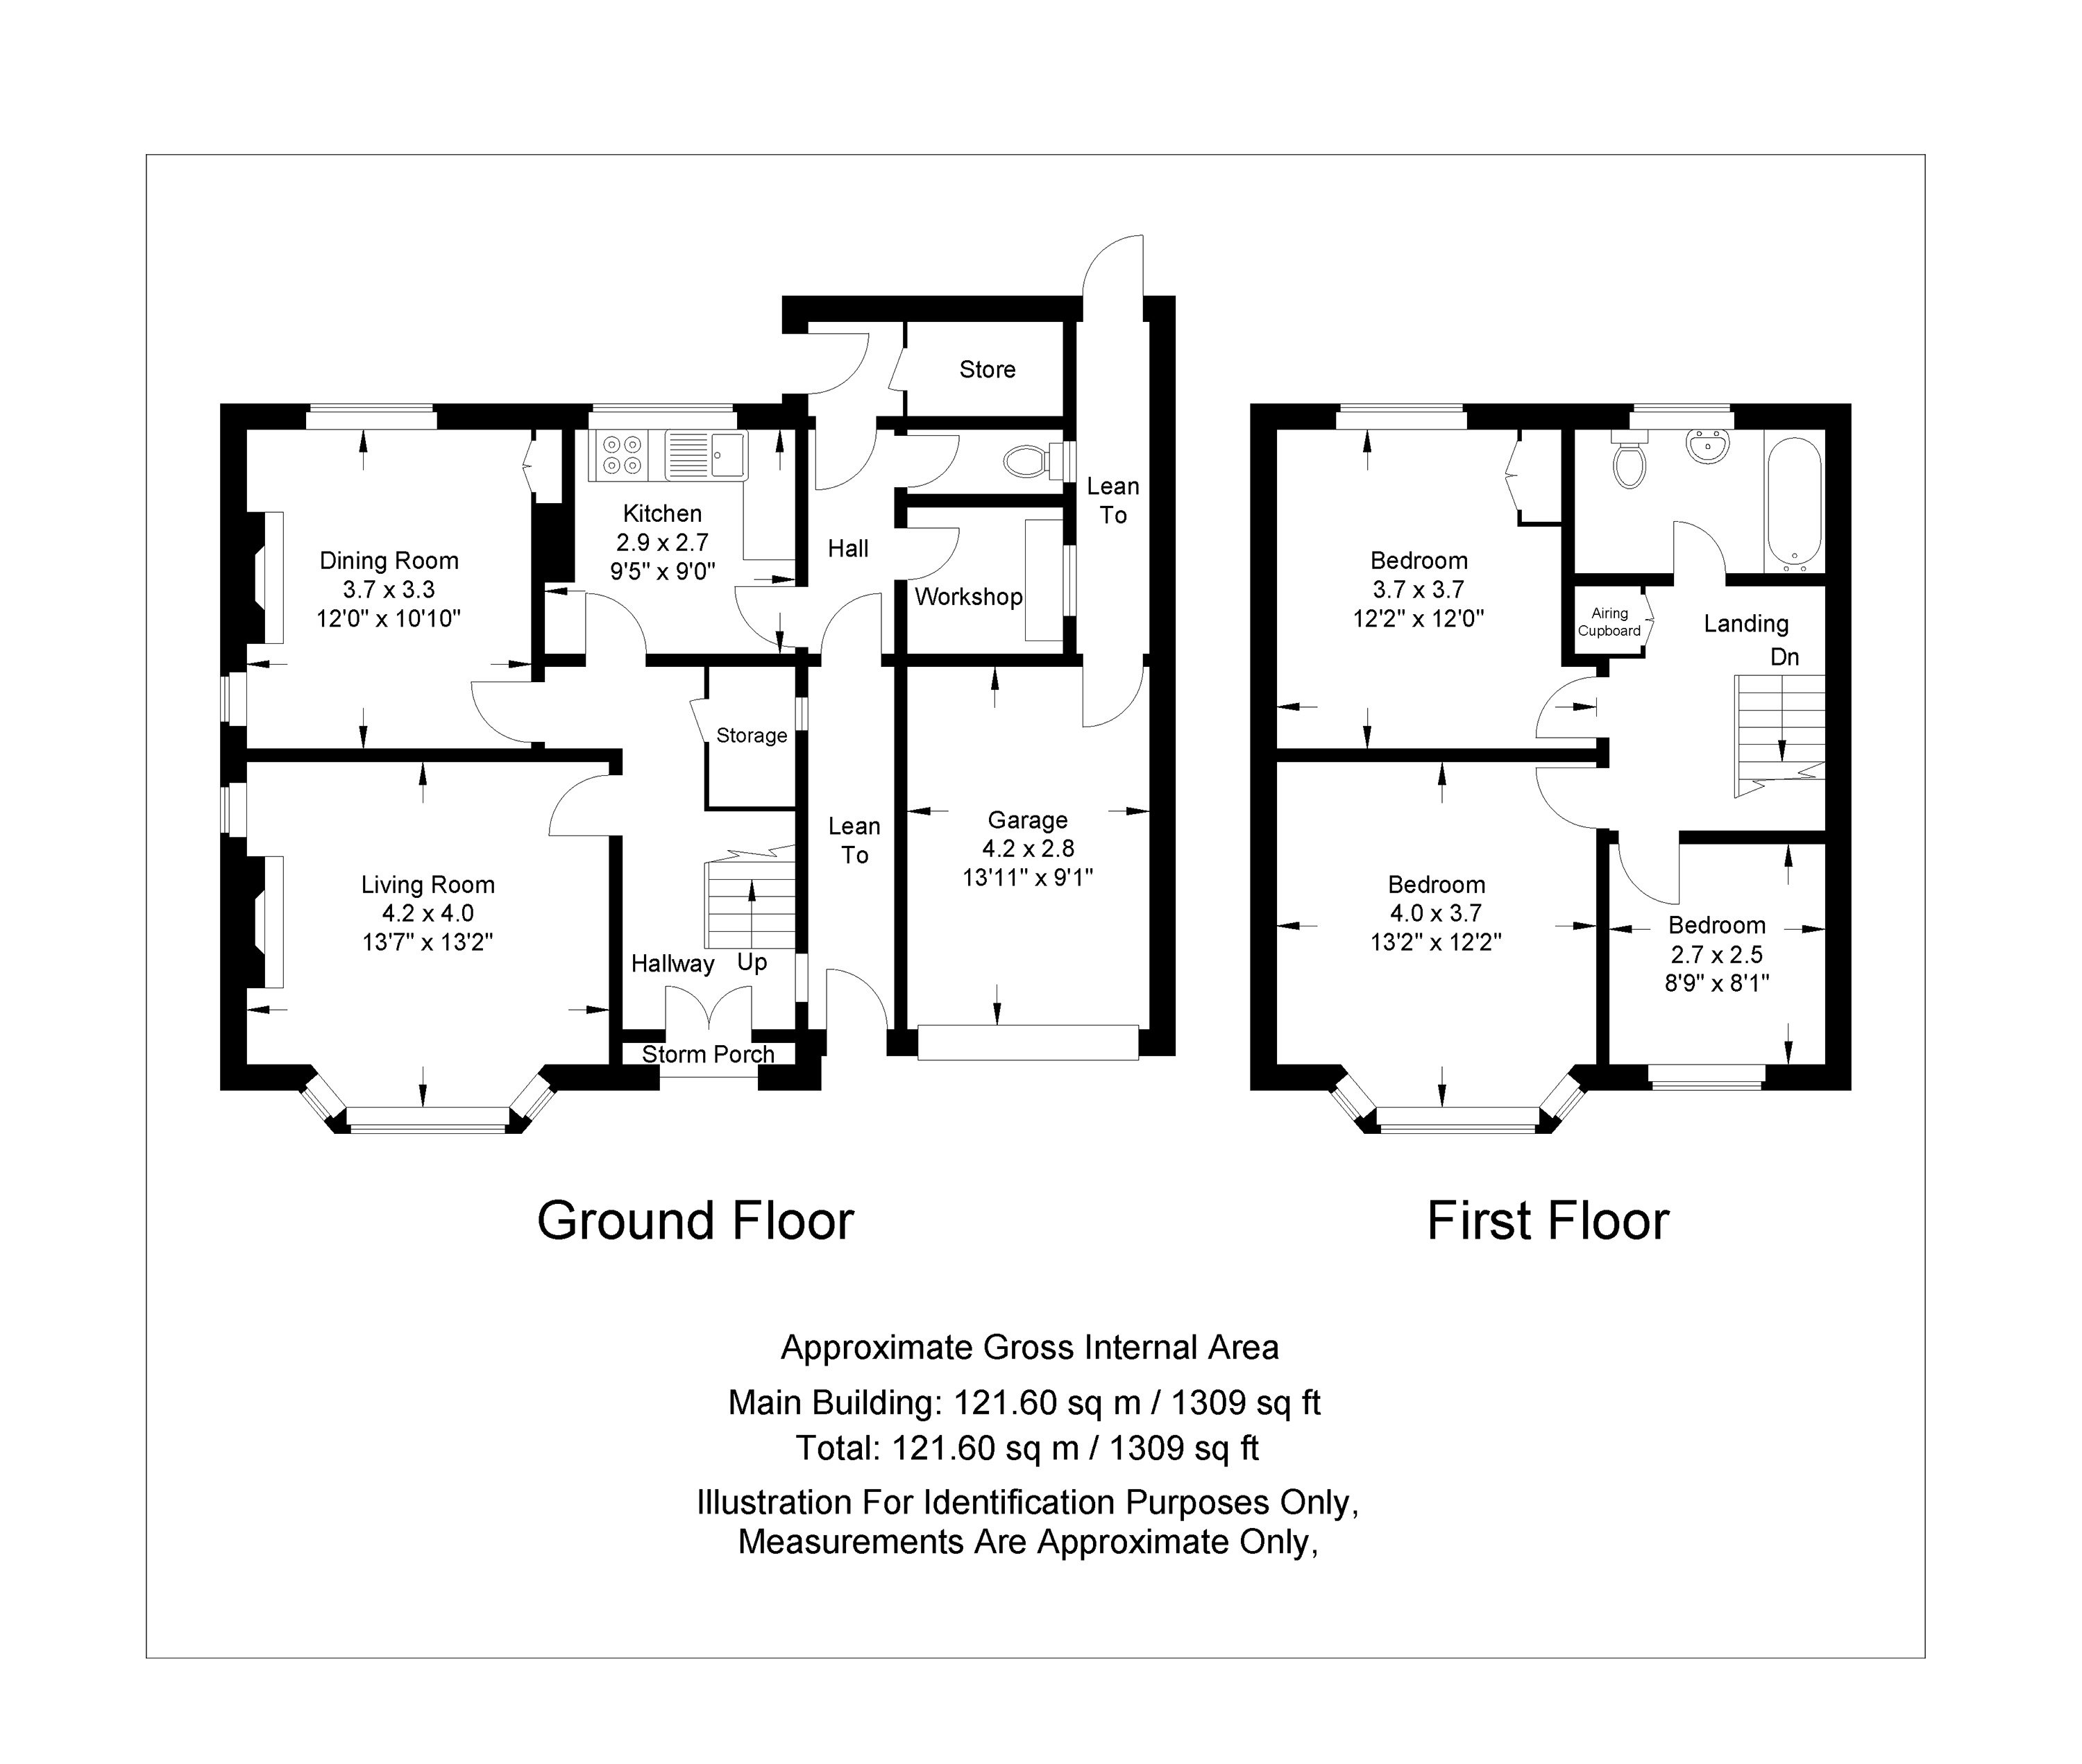 60 sq mt to sq ft floor plan for 60 sq meters floor area 90 square meters to square feet